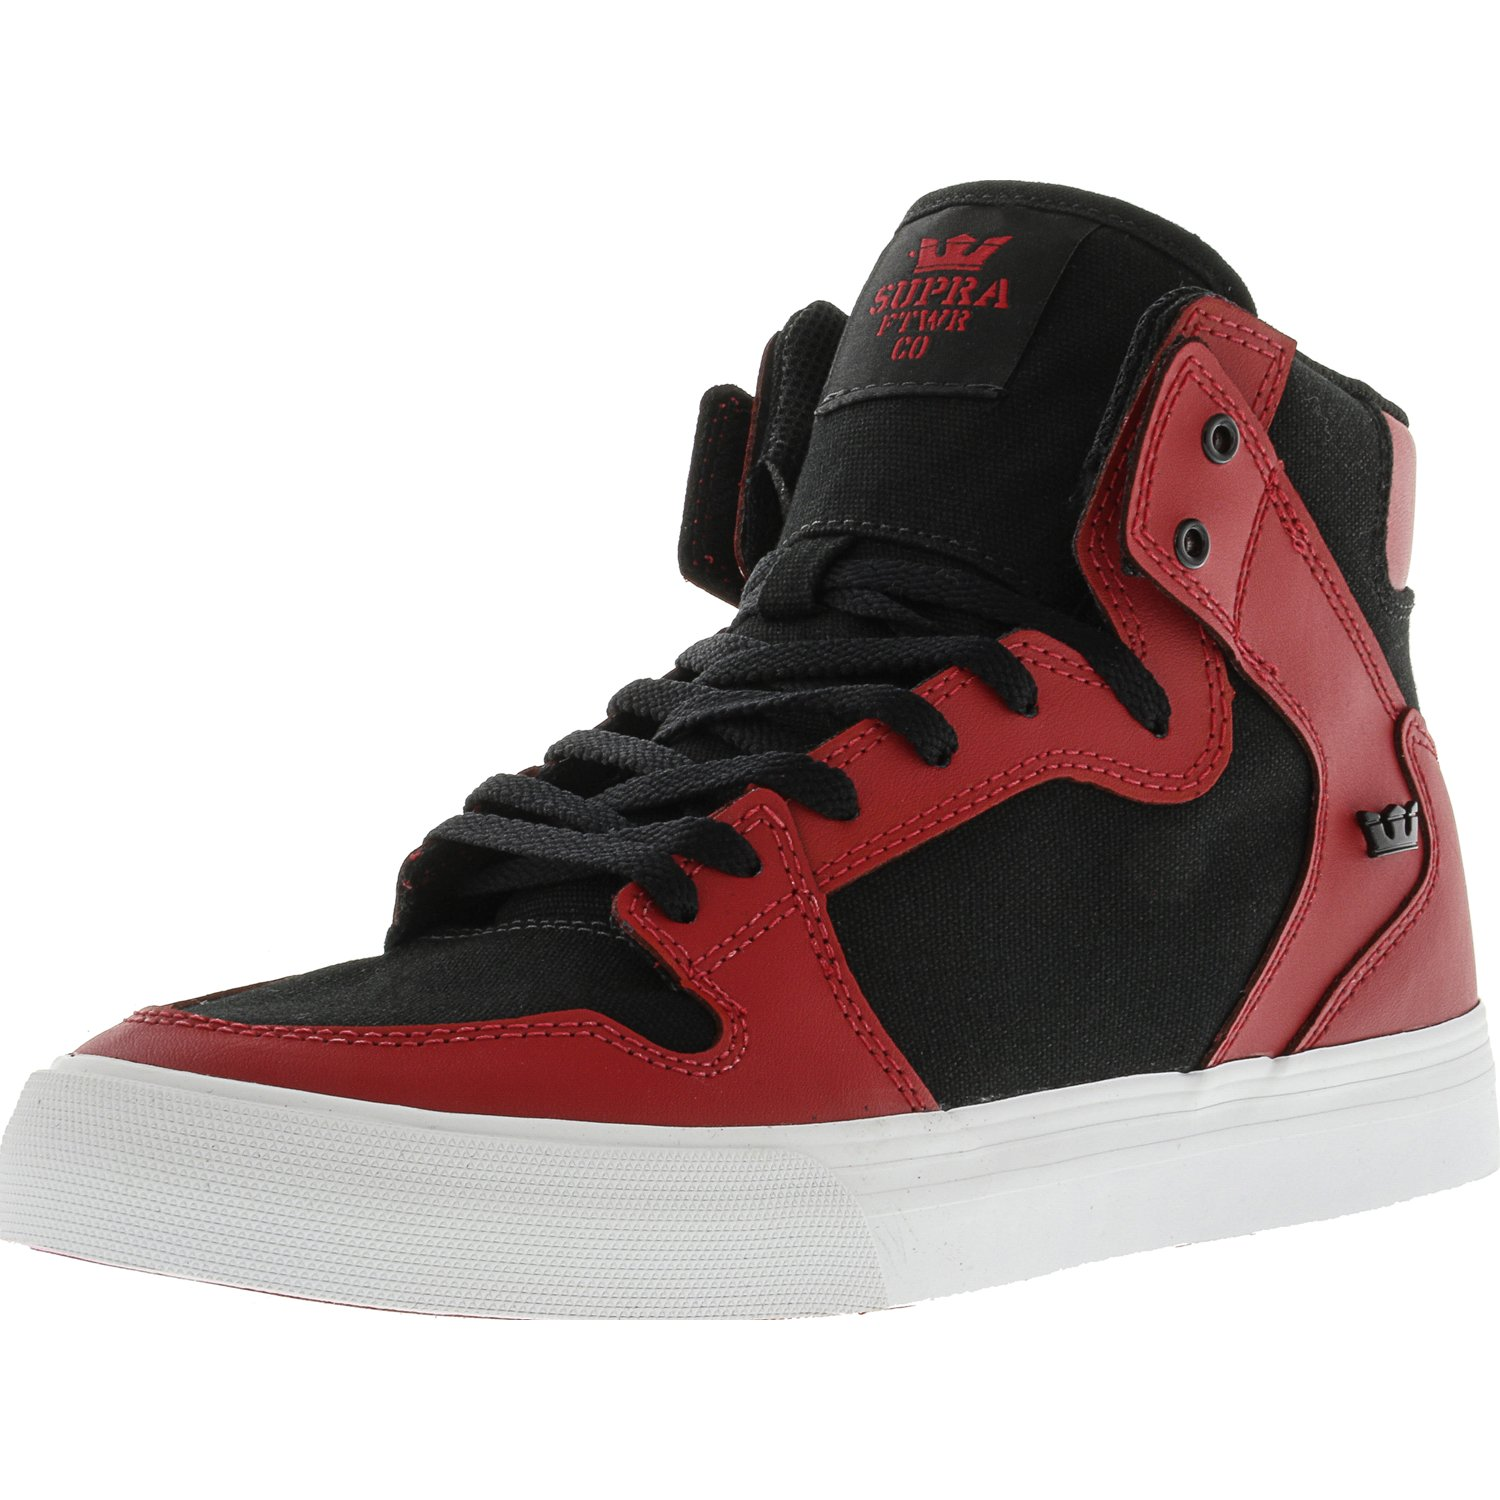 Supra Vaider Red / Black White High-Top Canvas Skateboarding Shoe - 6M